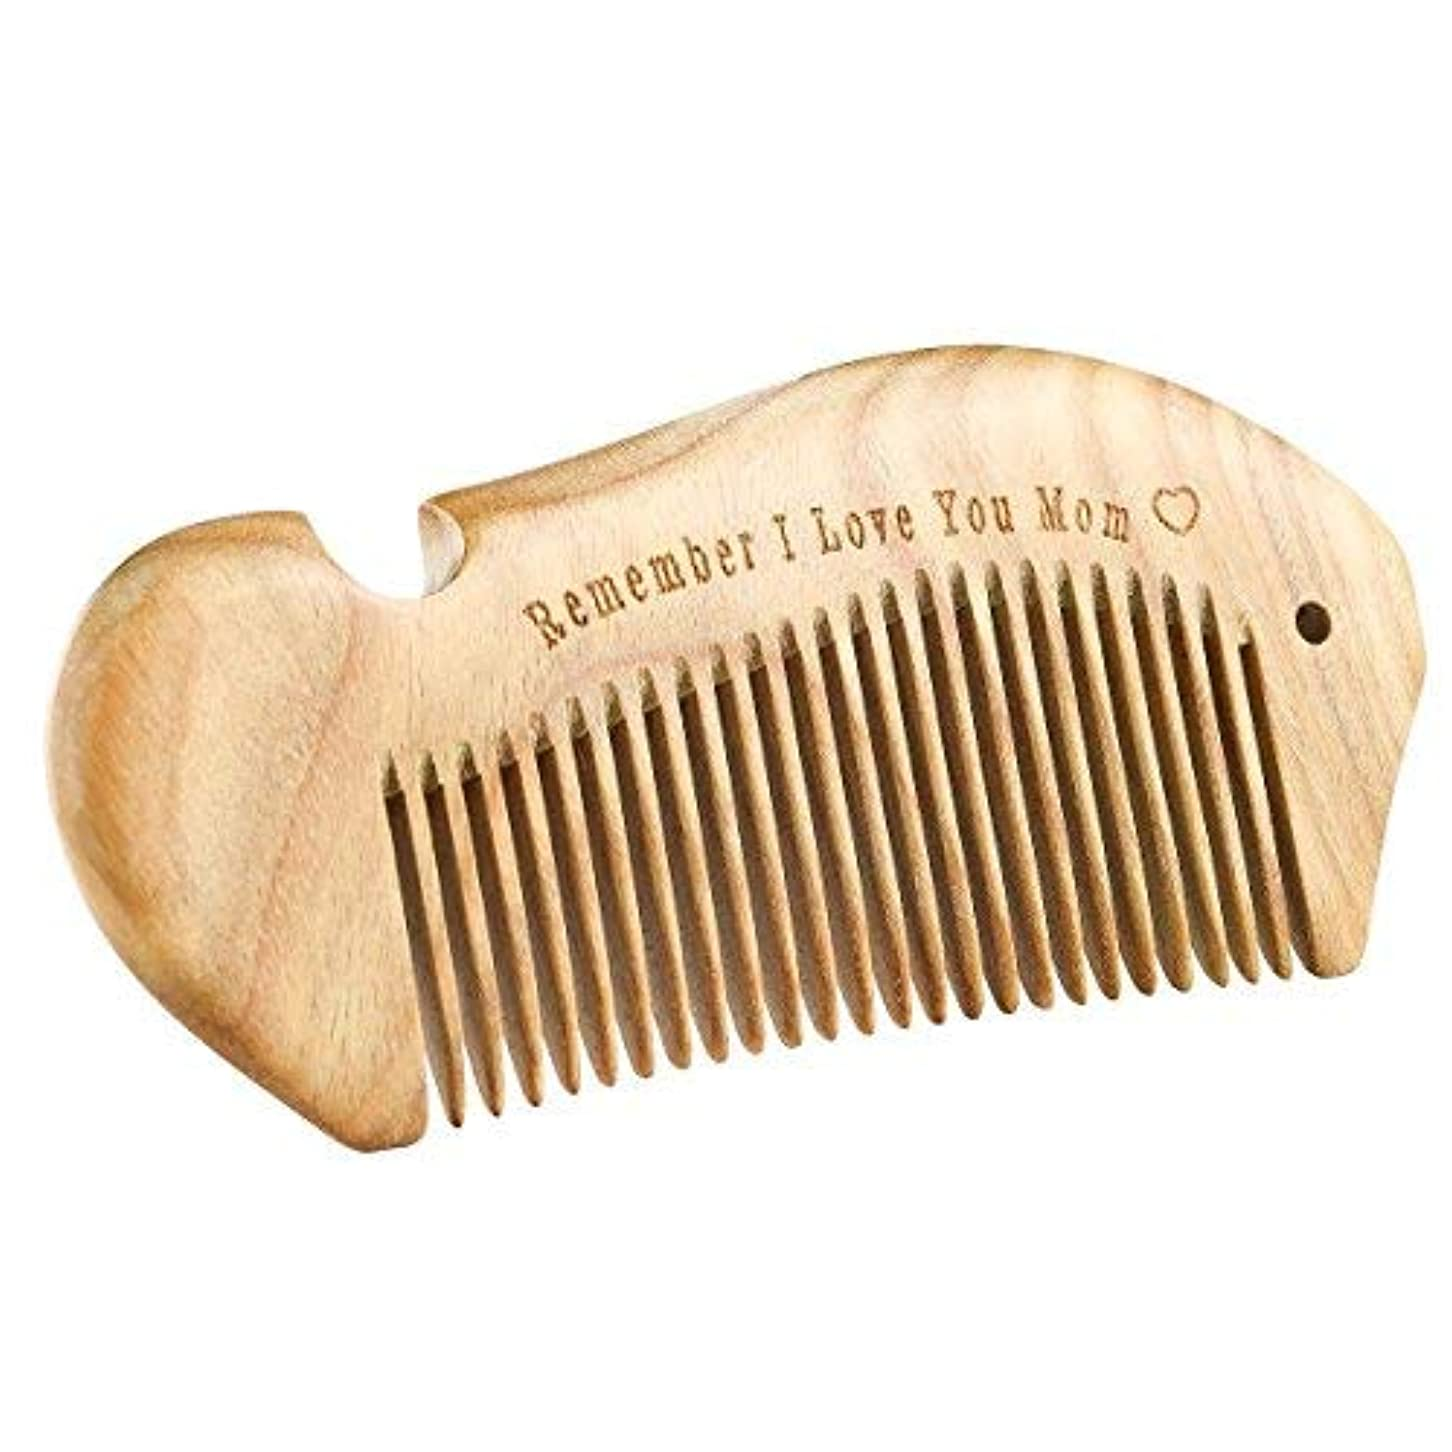 詩人宣伝切るi.VALUX Handmade Sandalwood Hair Comb,No Static Natural Aroma Wood Comb for Curly Hair [並行輸入品]